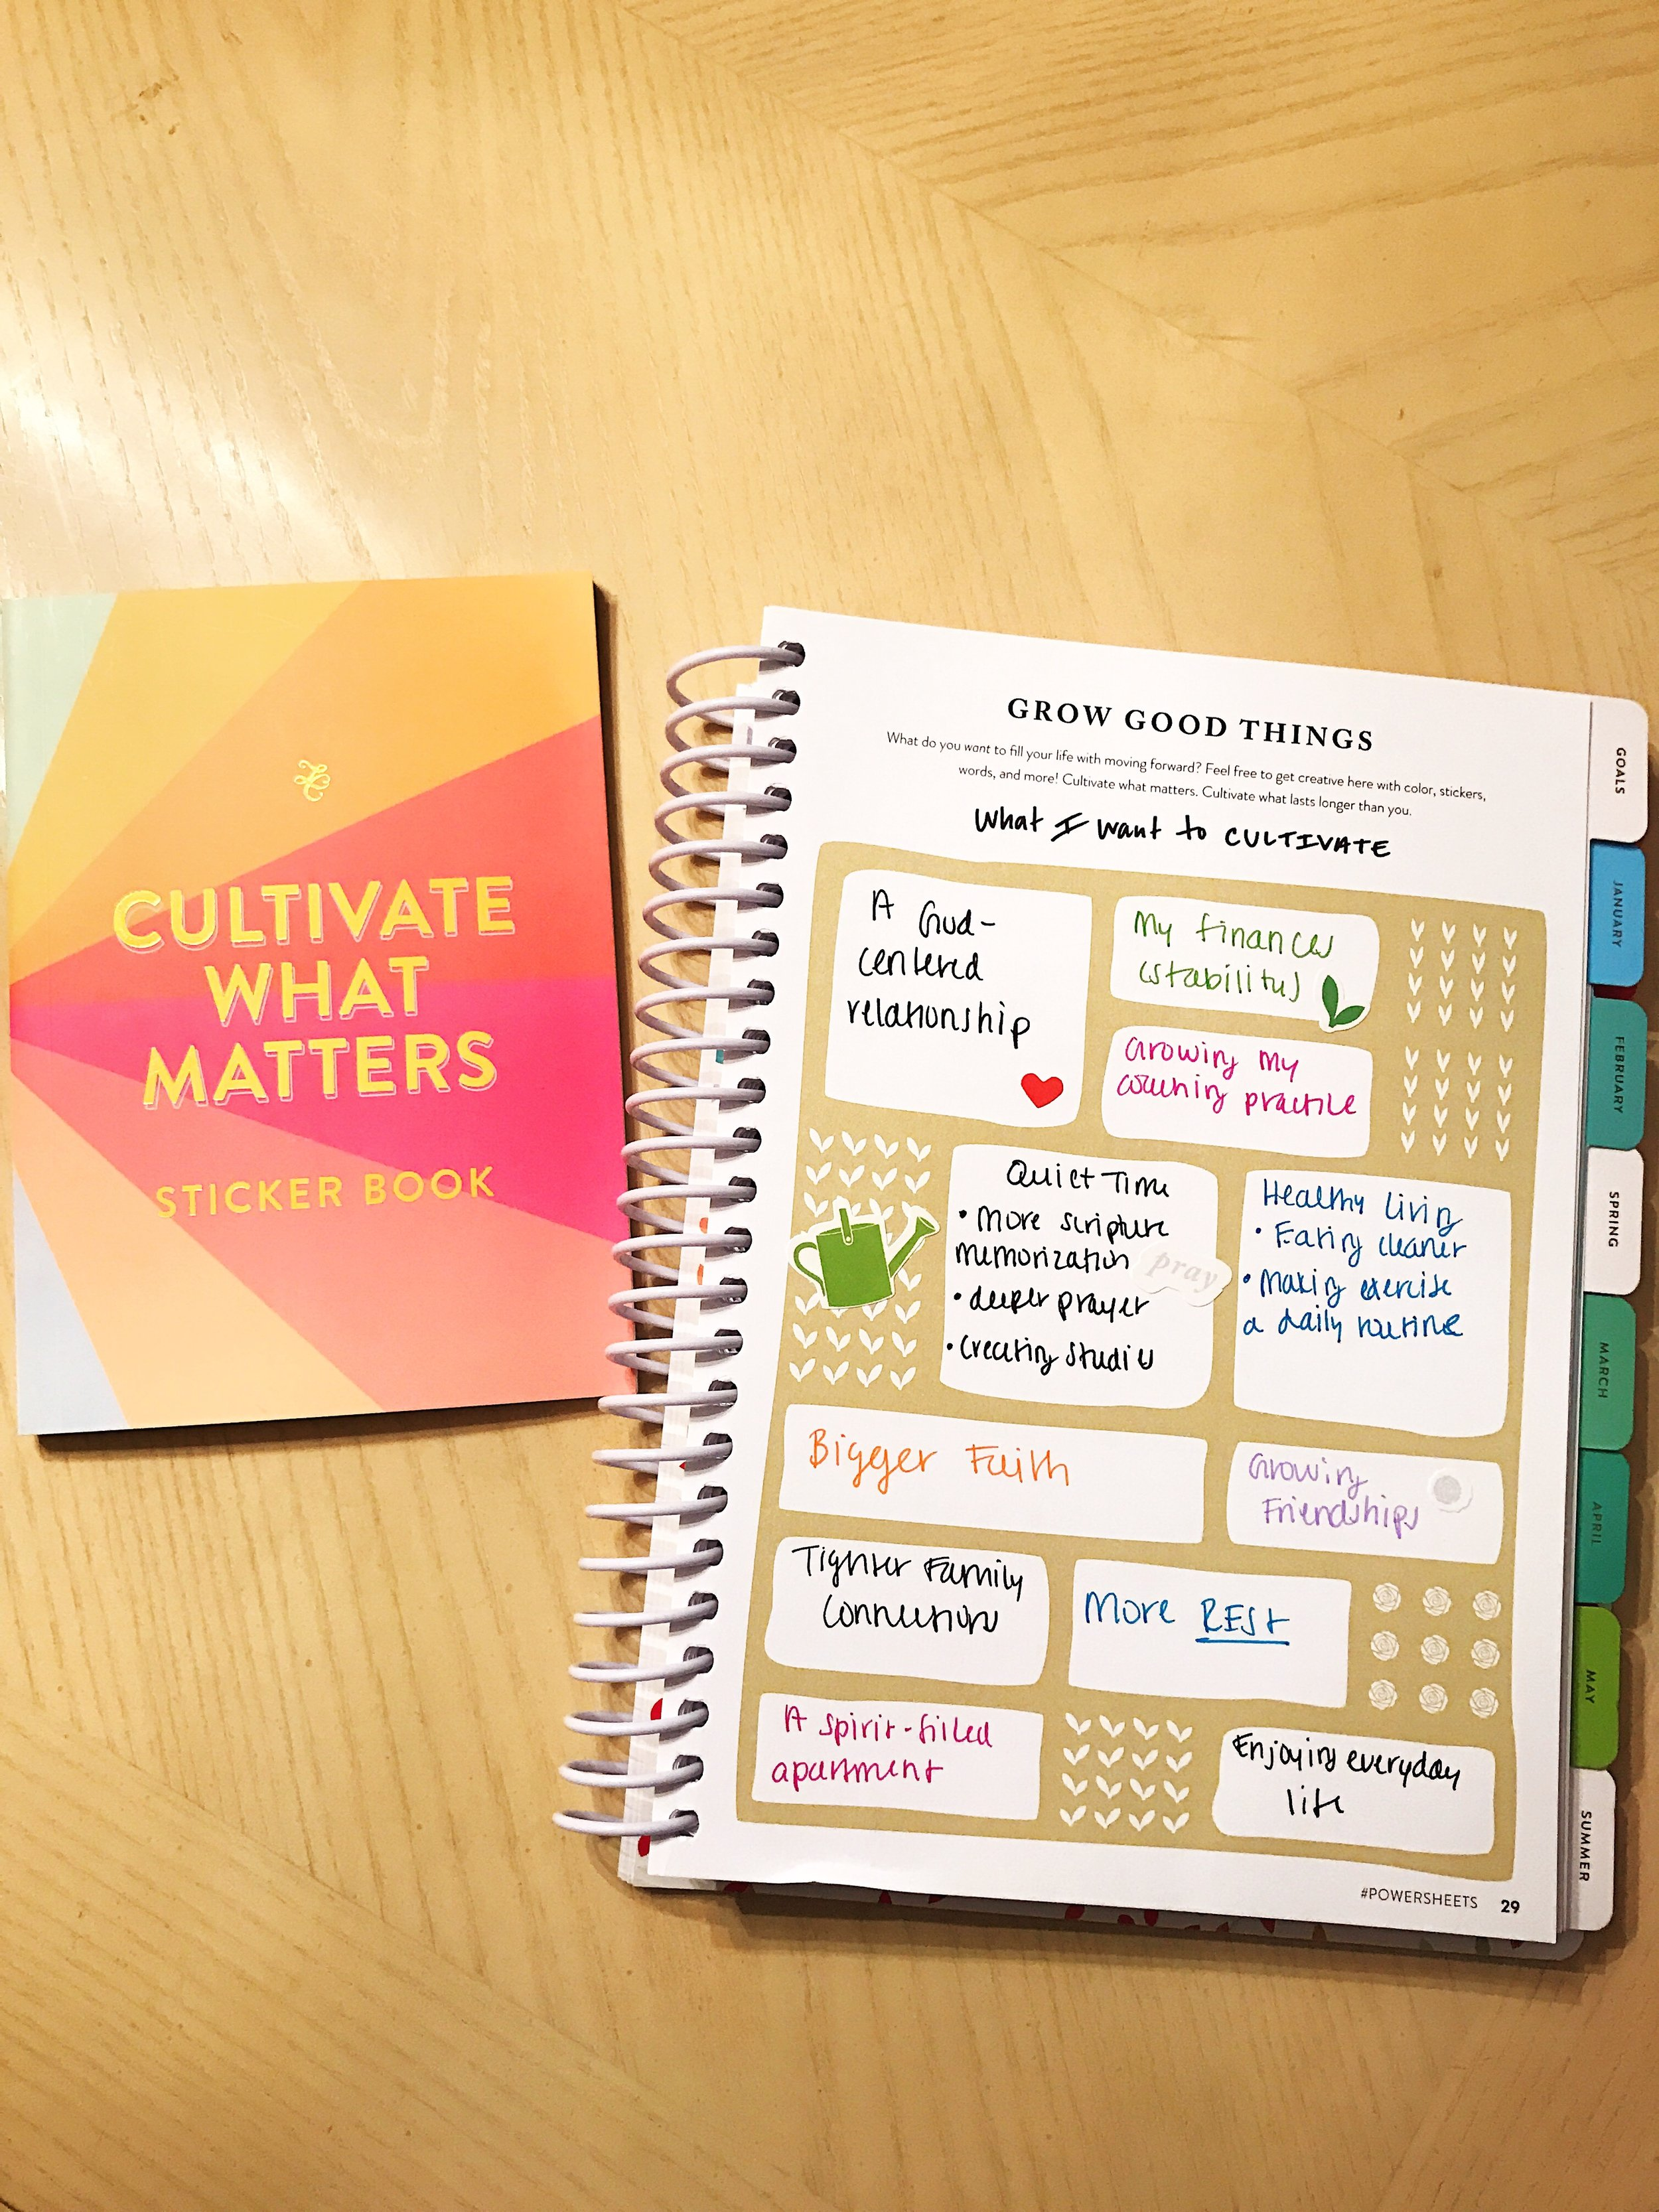 Cultivating What Matters | Fearfully Fashioned -- Do you find yourself constantly striving to do and be more? Strive Less. Be Present, and focus on cultivating what matters. Click here to read more or pin to save for later. #bepresent #wellness #FearfullyFashioned